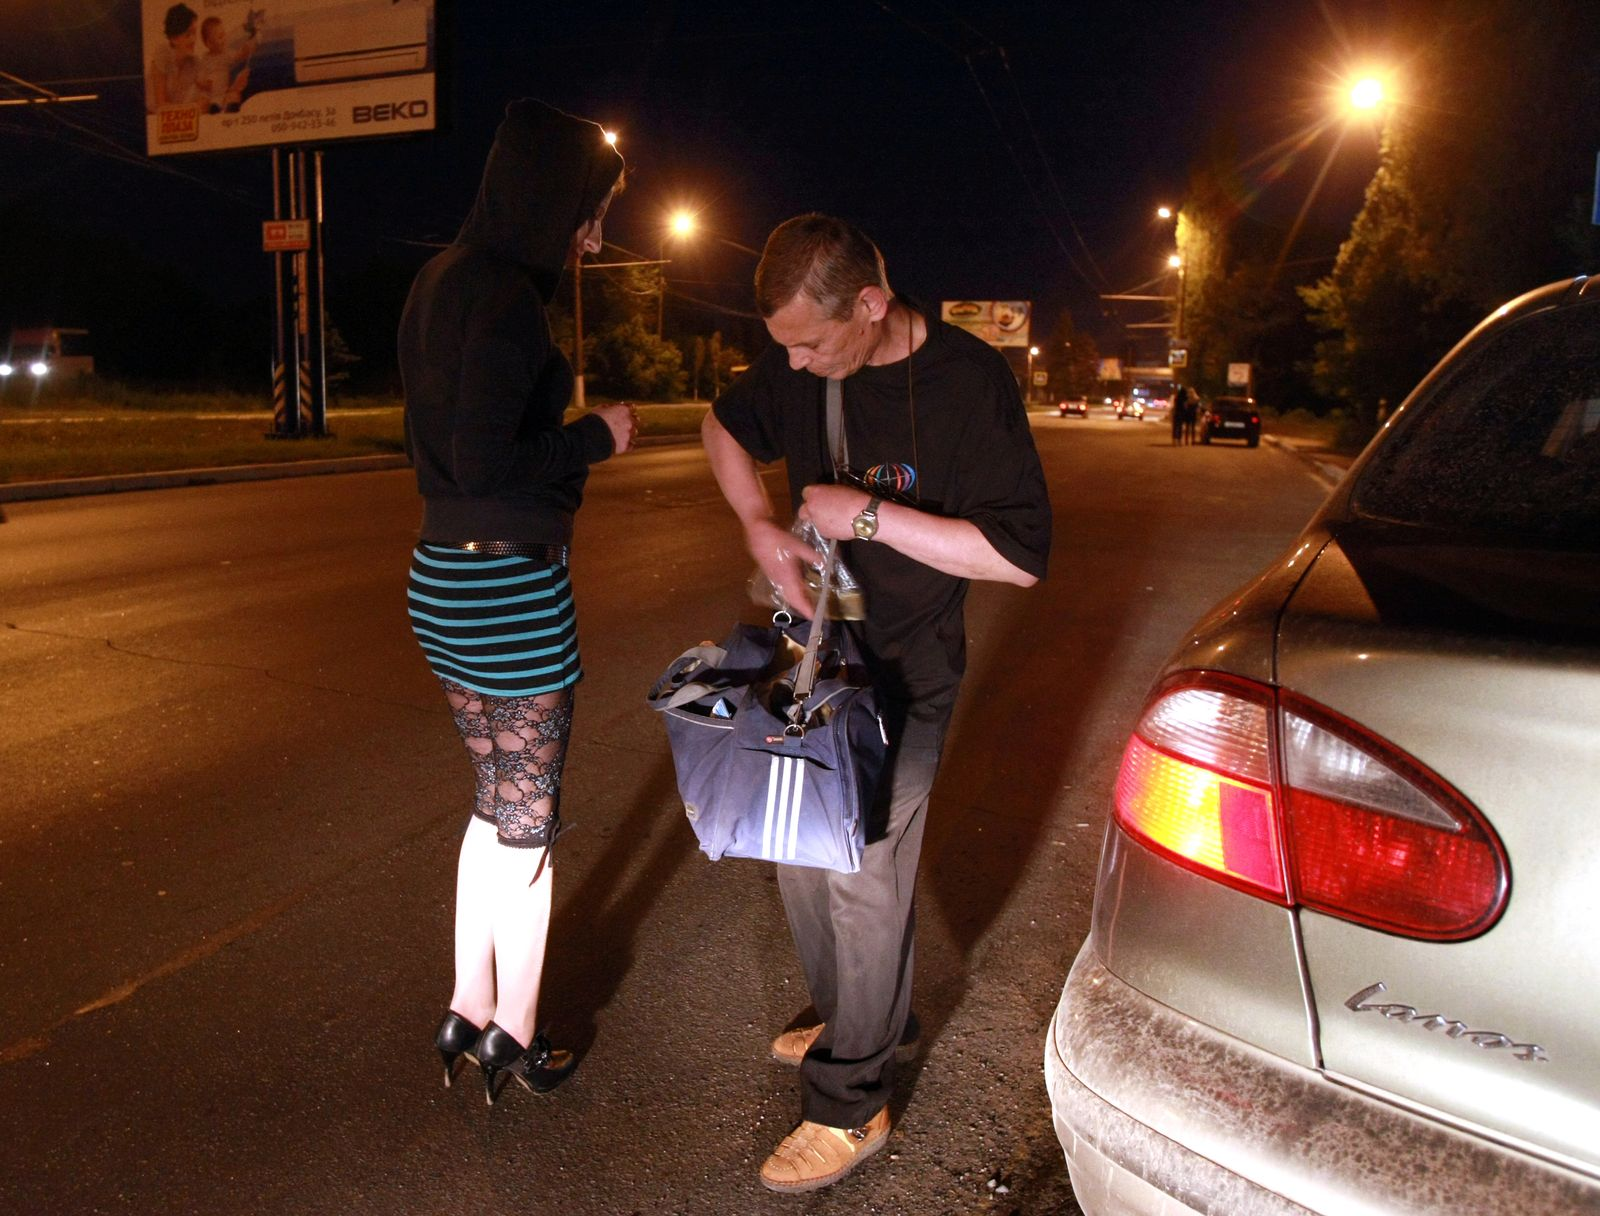 Ukraine / Prostitution